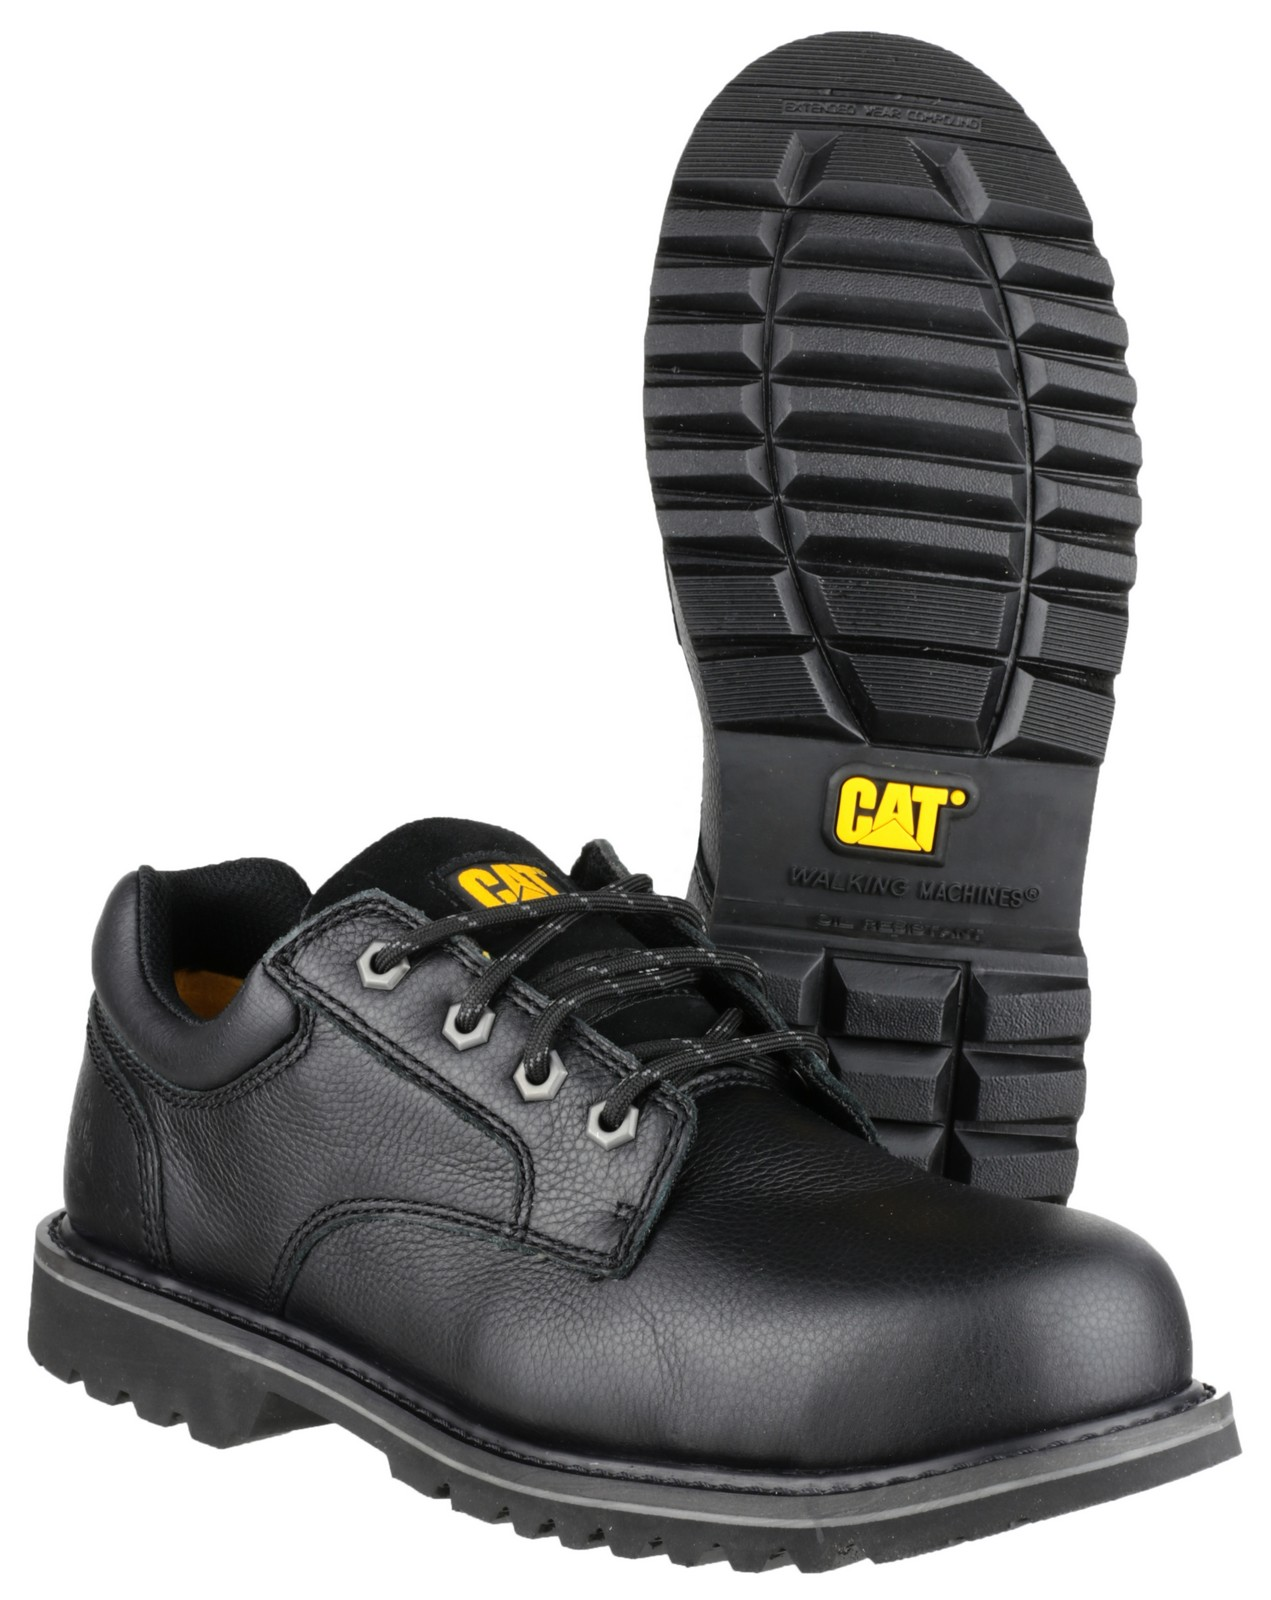 Cat Safety Shoe Price